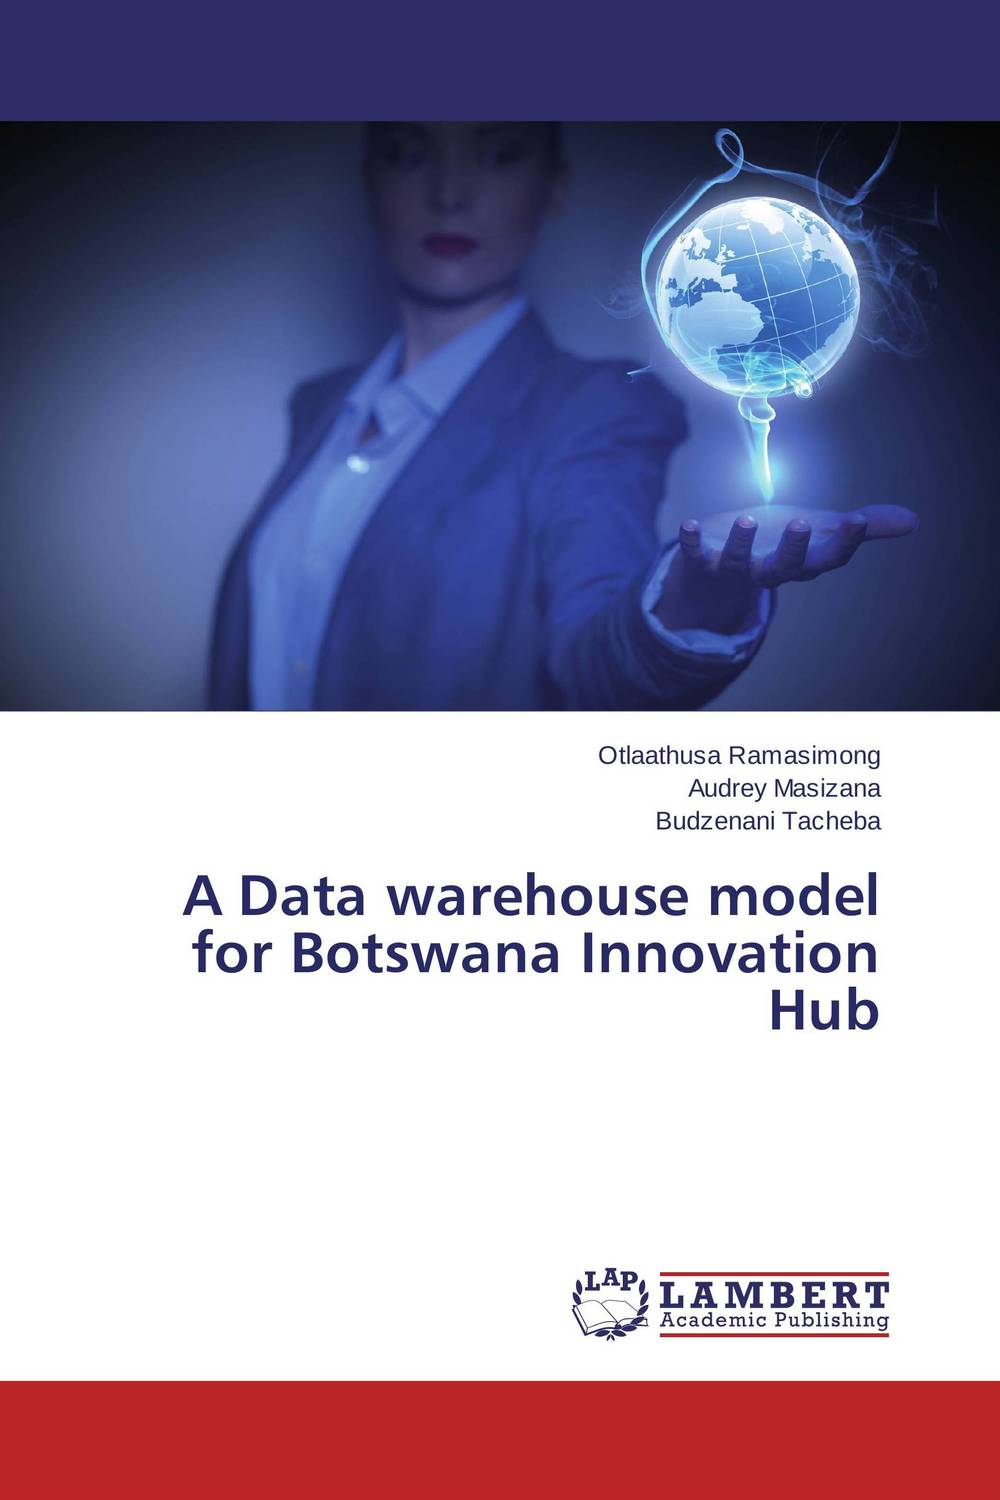 A Data warehouse model for Botswana Innovation Hub robert hillard information driven business how to manage data and information for maximum advantage